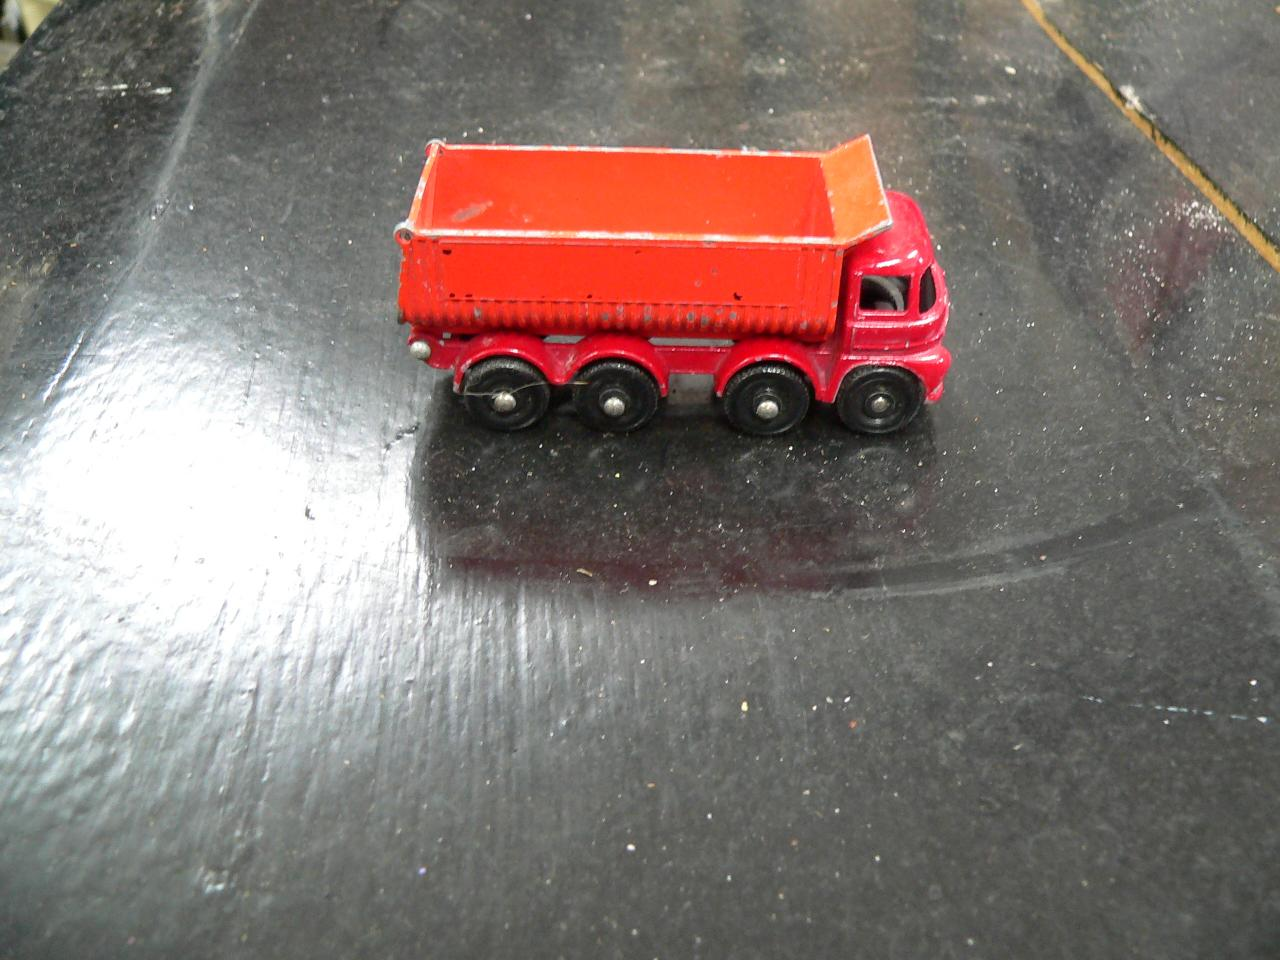 Camion hoveringham tipper # 4188.2